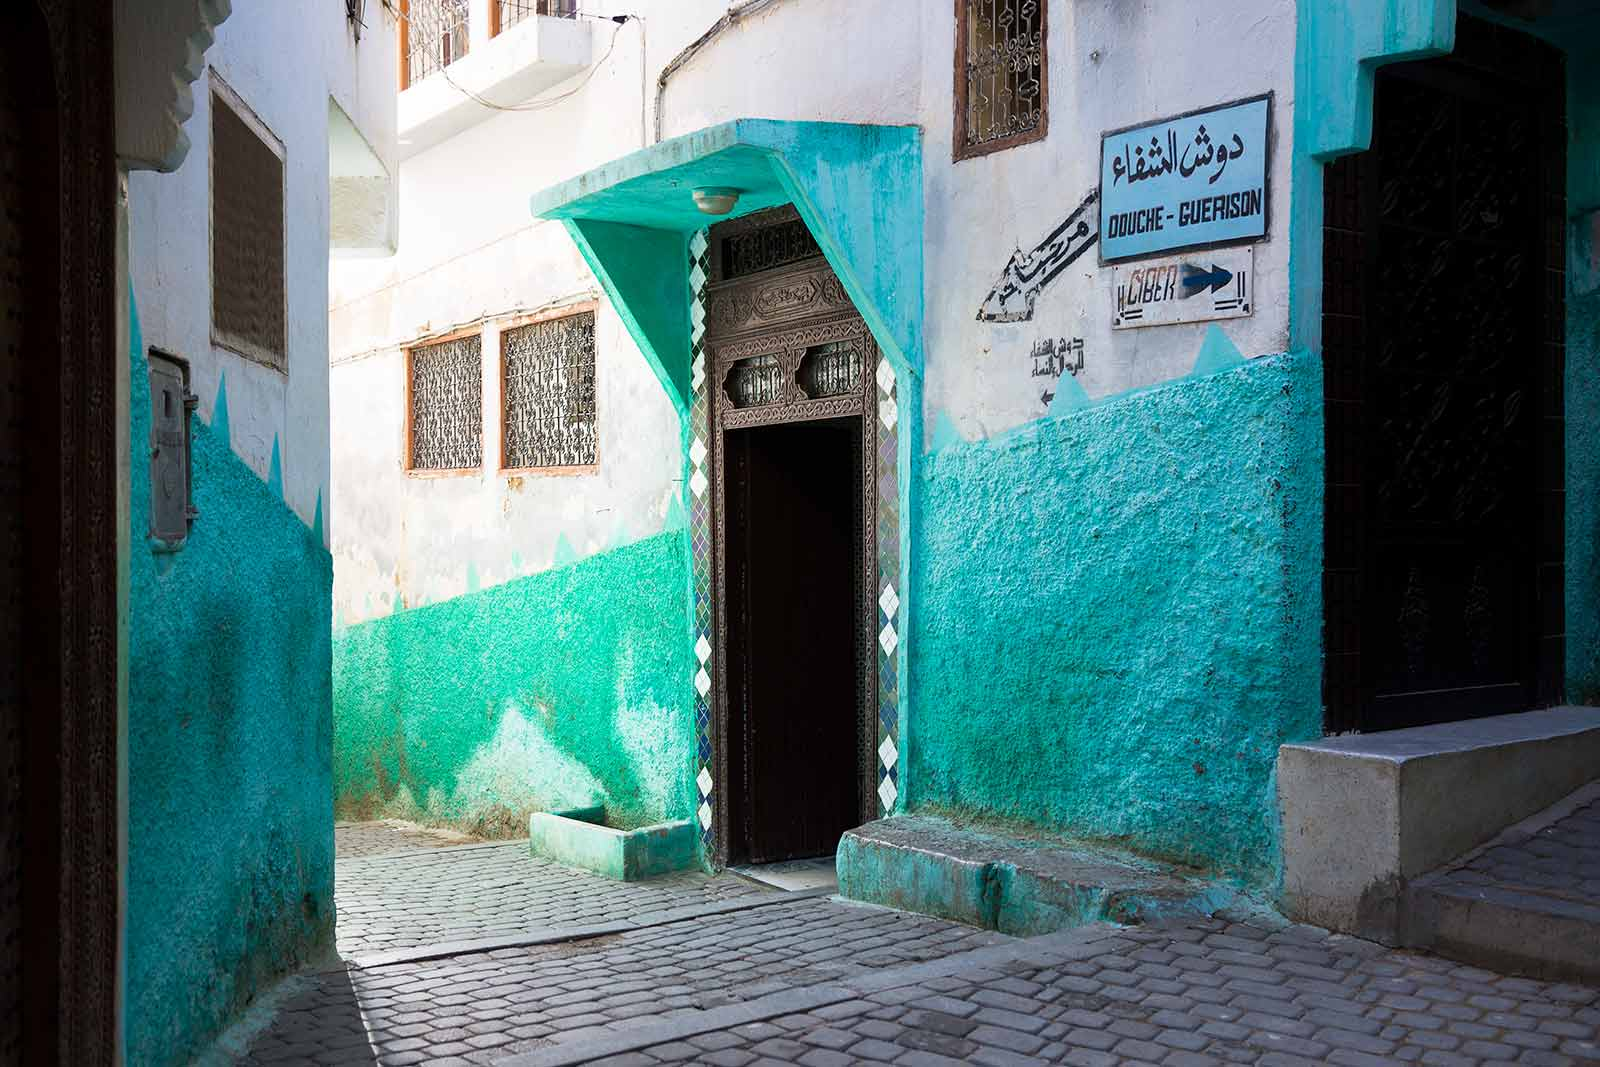 While the streets in the Medinas of Marrakech, Chefchaouen or Fes are invigorating, they can also be exhausting. Moulay Idriss is the perfect spot to get away from the bustling city life, while still being in a city.